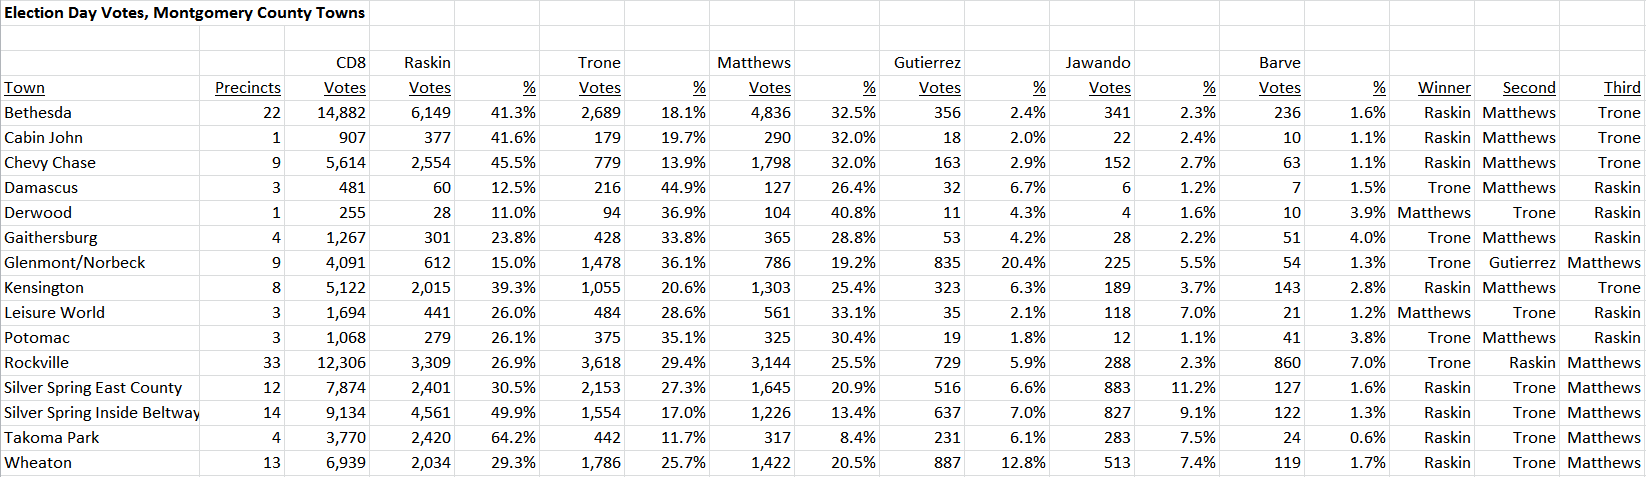 CD8 Votes by Towns Montgomery 2